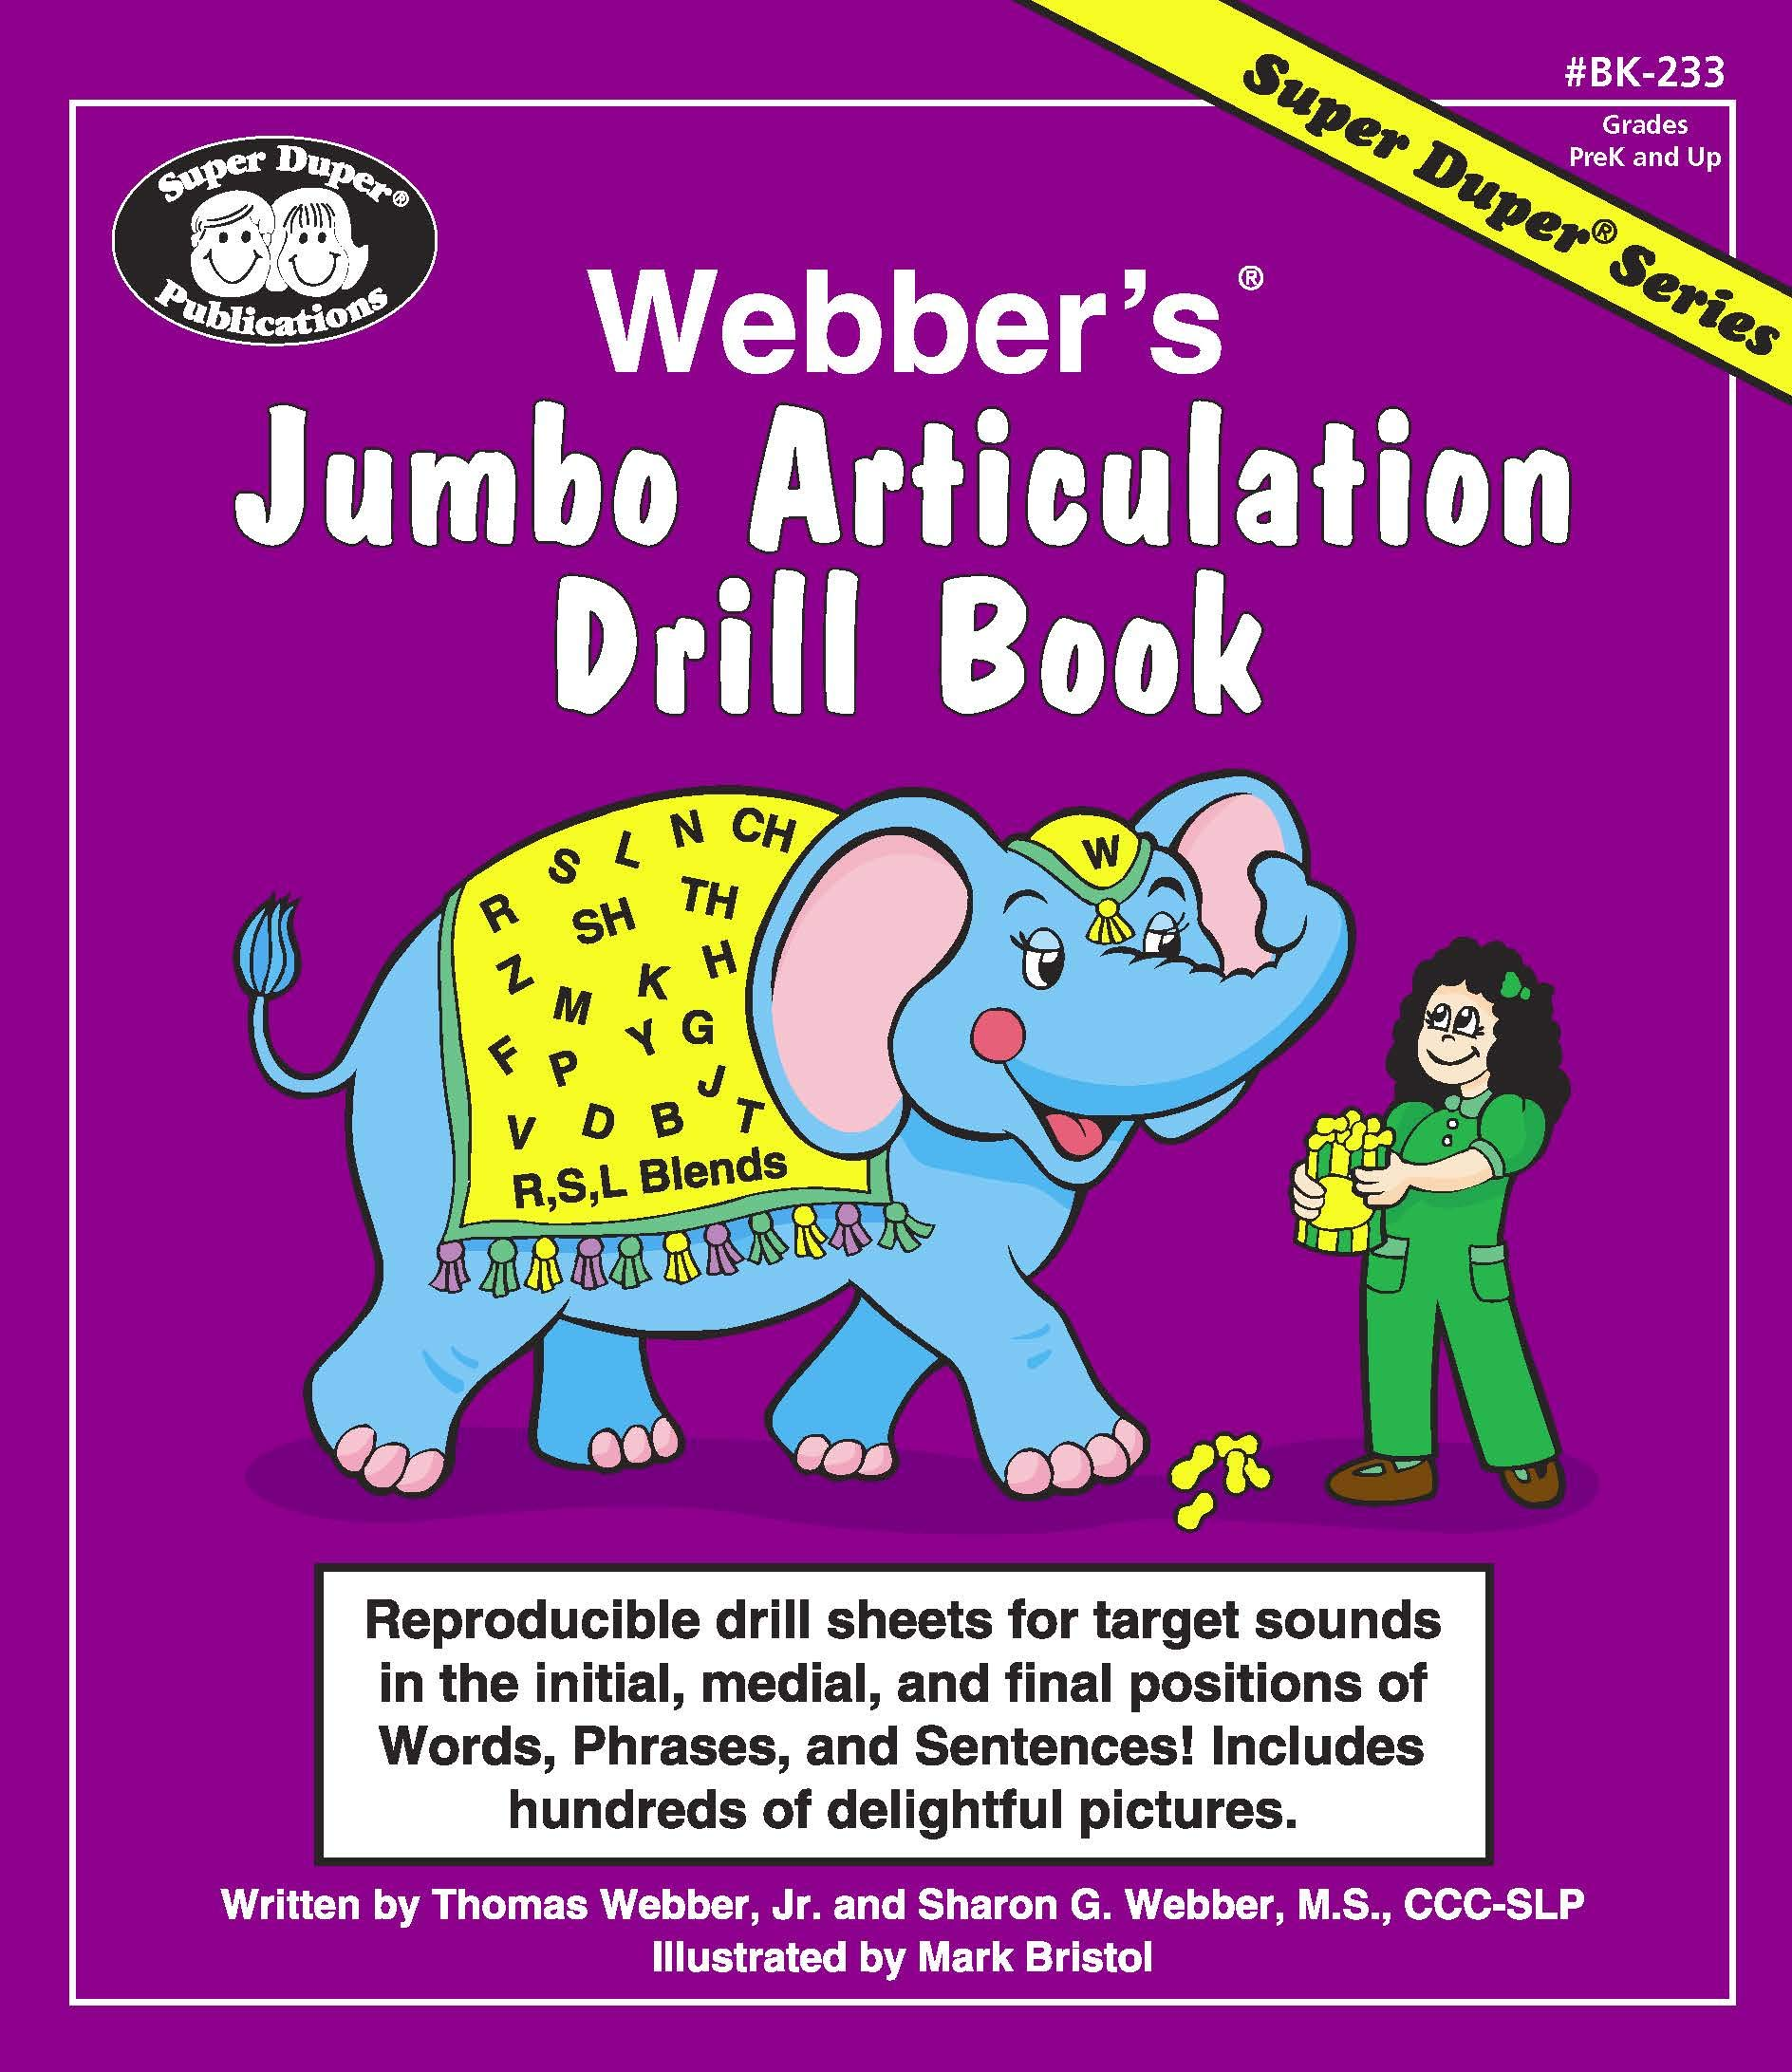 Webber's Jumbo Articulation Drill Book: Reproducible drill sheets for target sounds in the initial, medial, and final positions of words, phrases, and sentences! Includes hundreds of pictures.